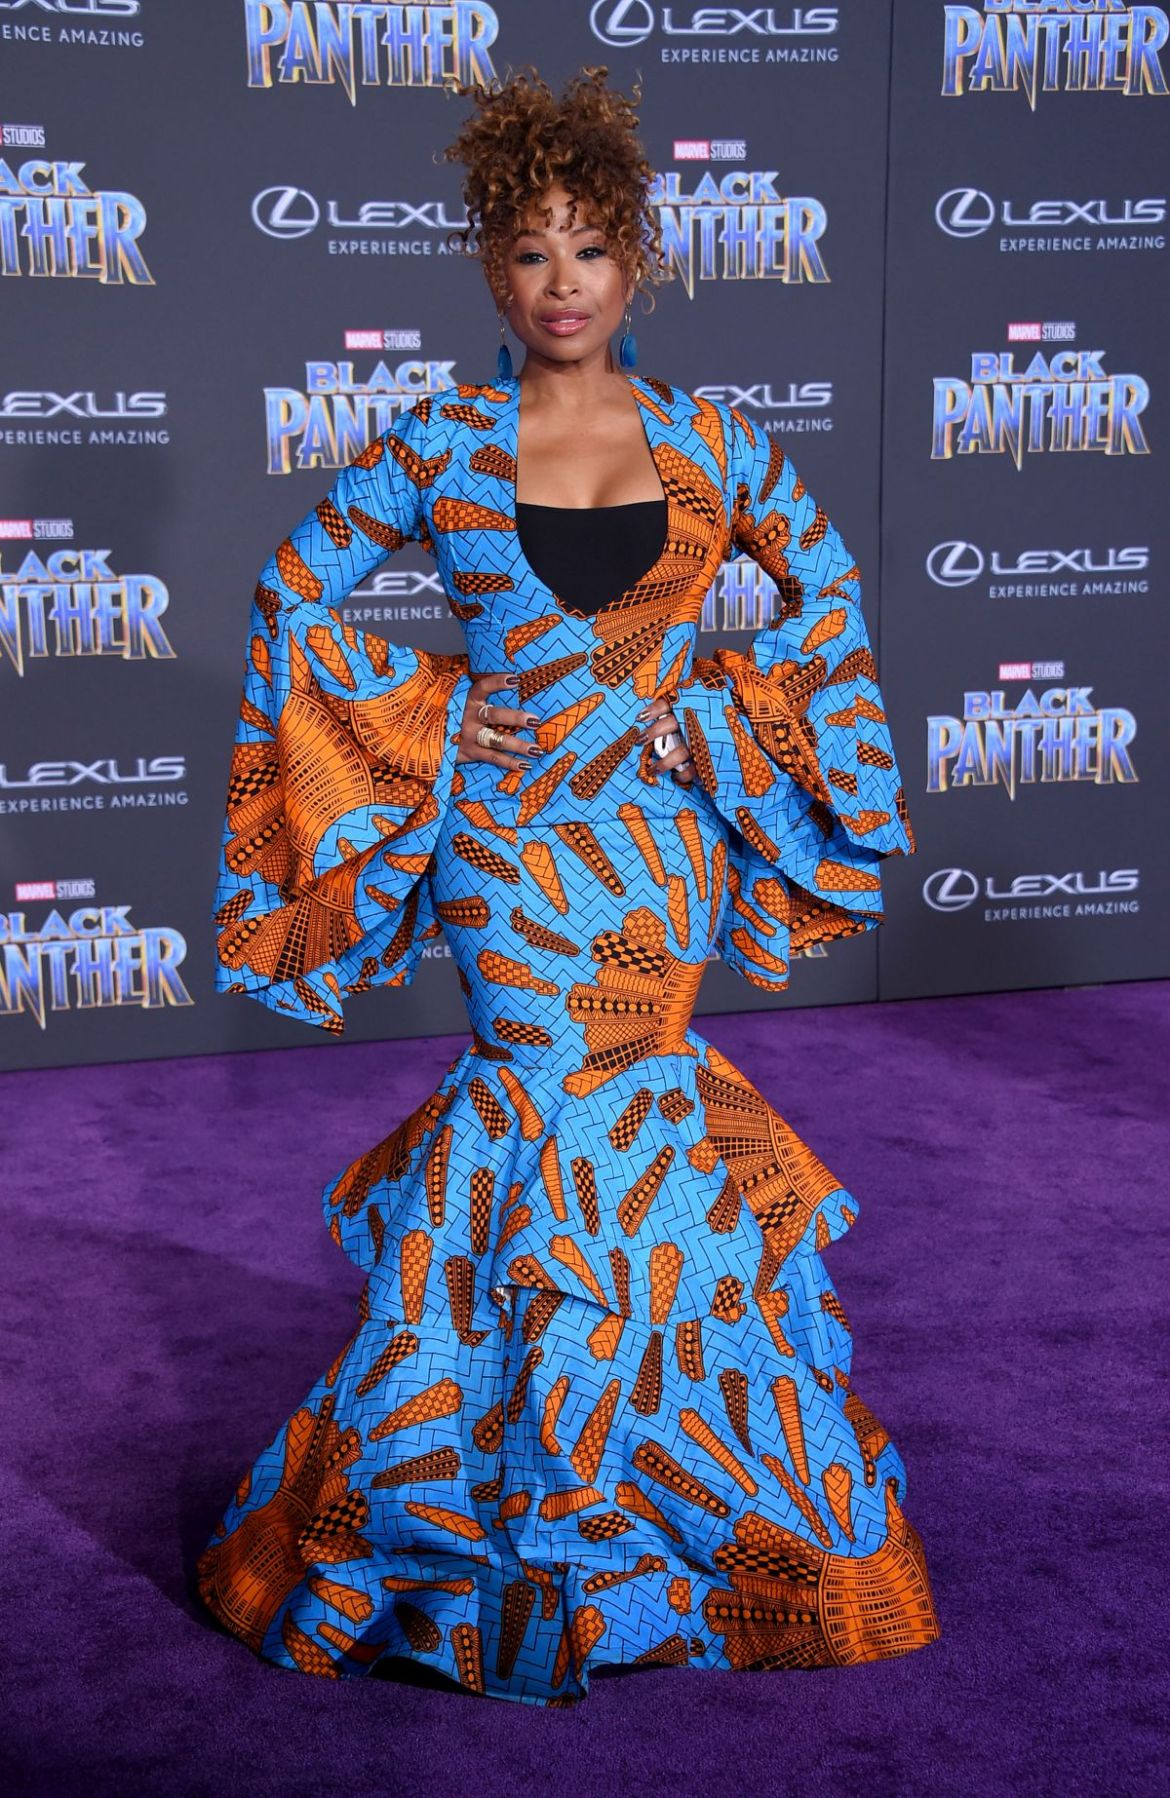 Image result for black panther premiere fashion